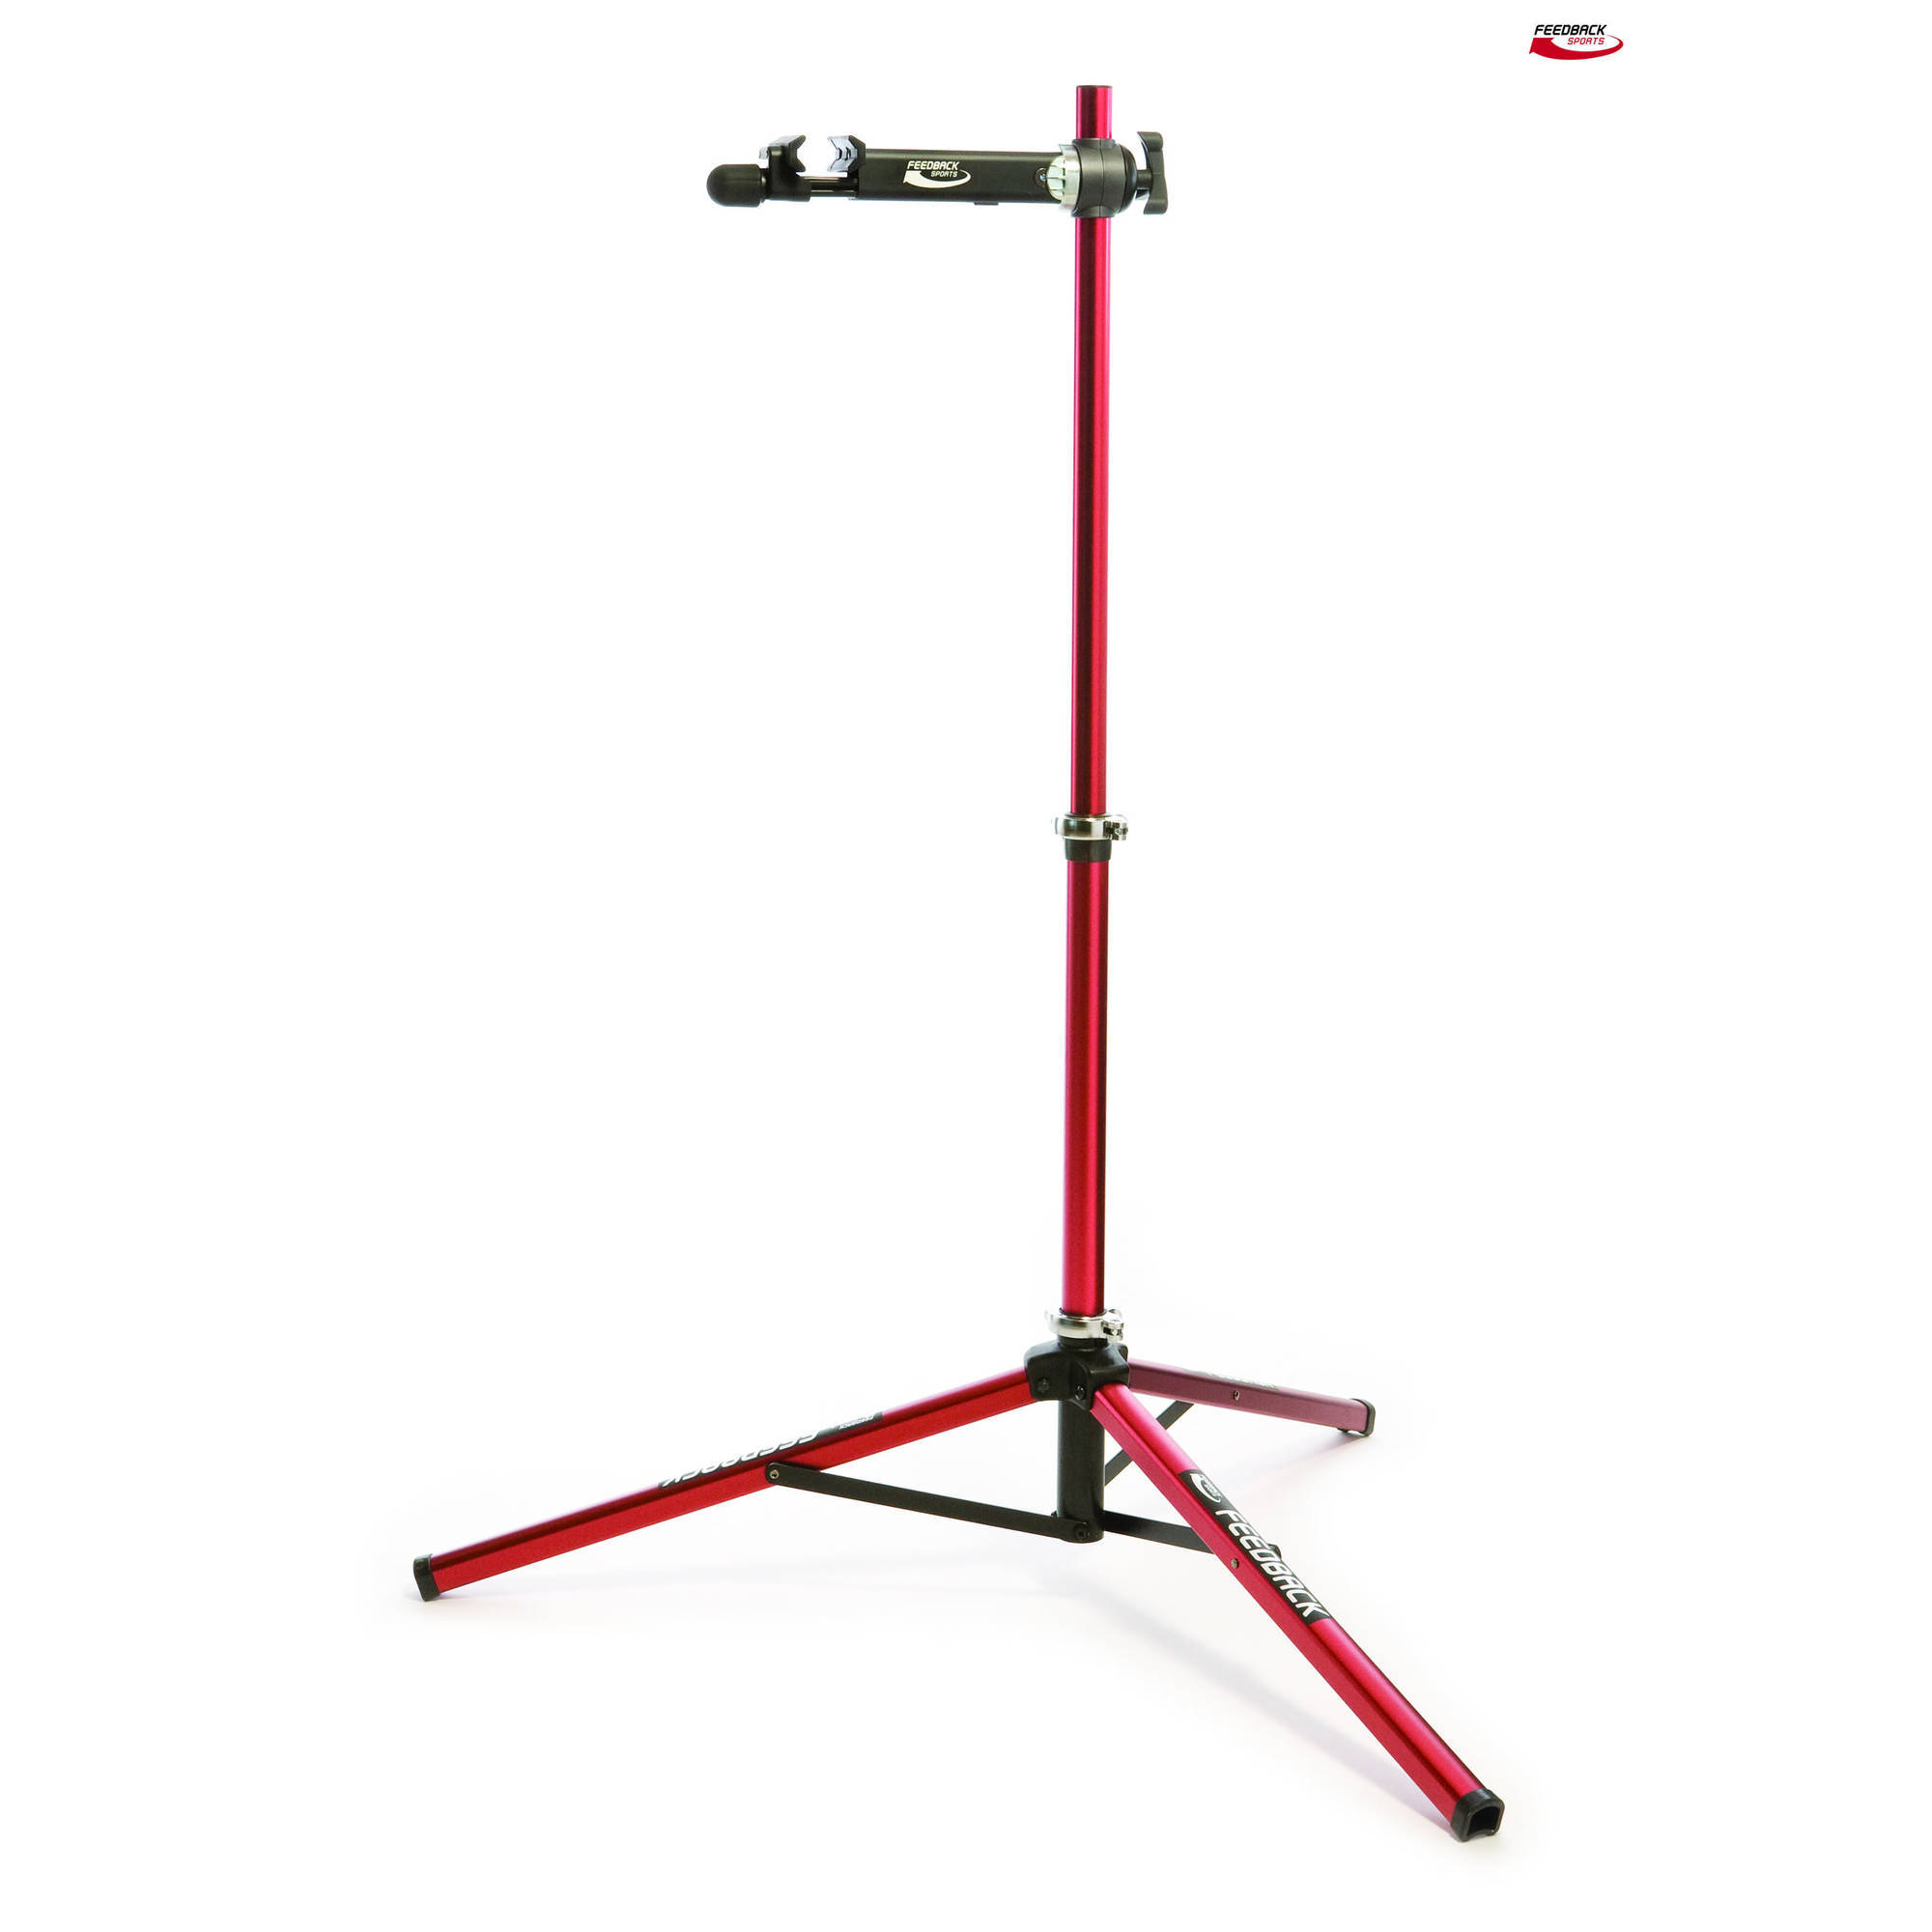 Bike Stand Deals On 1001 Blocks